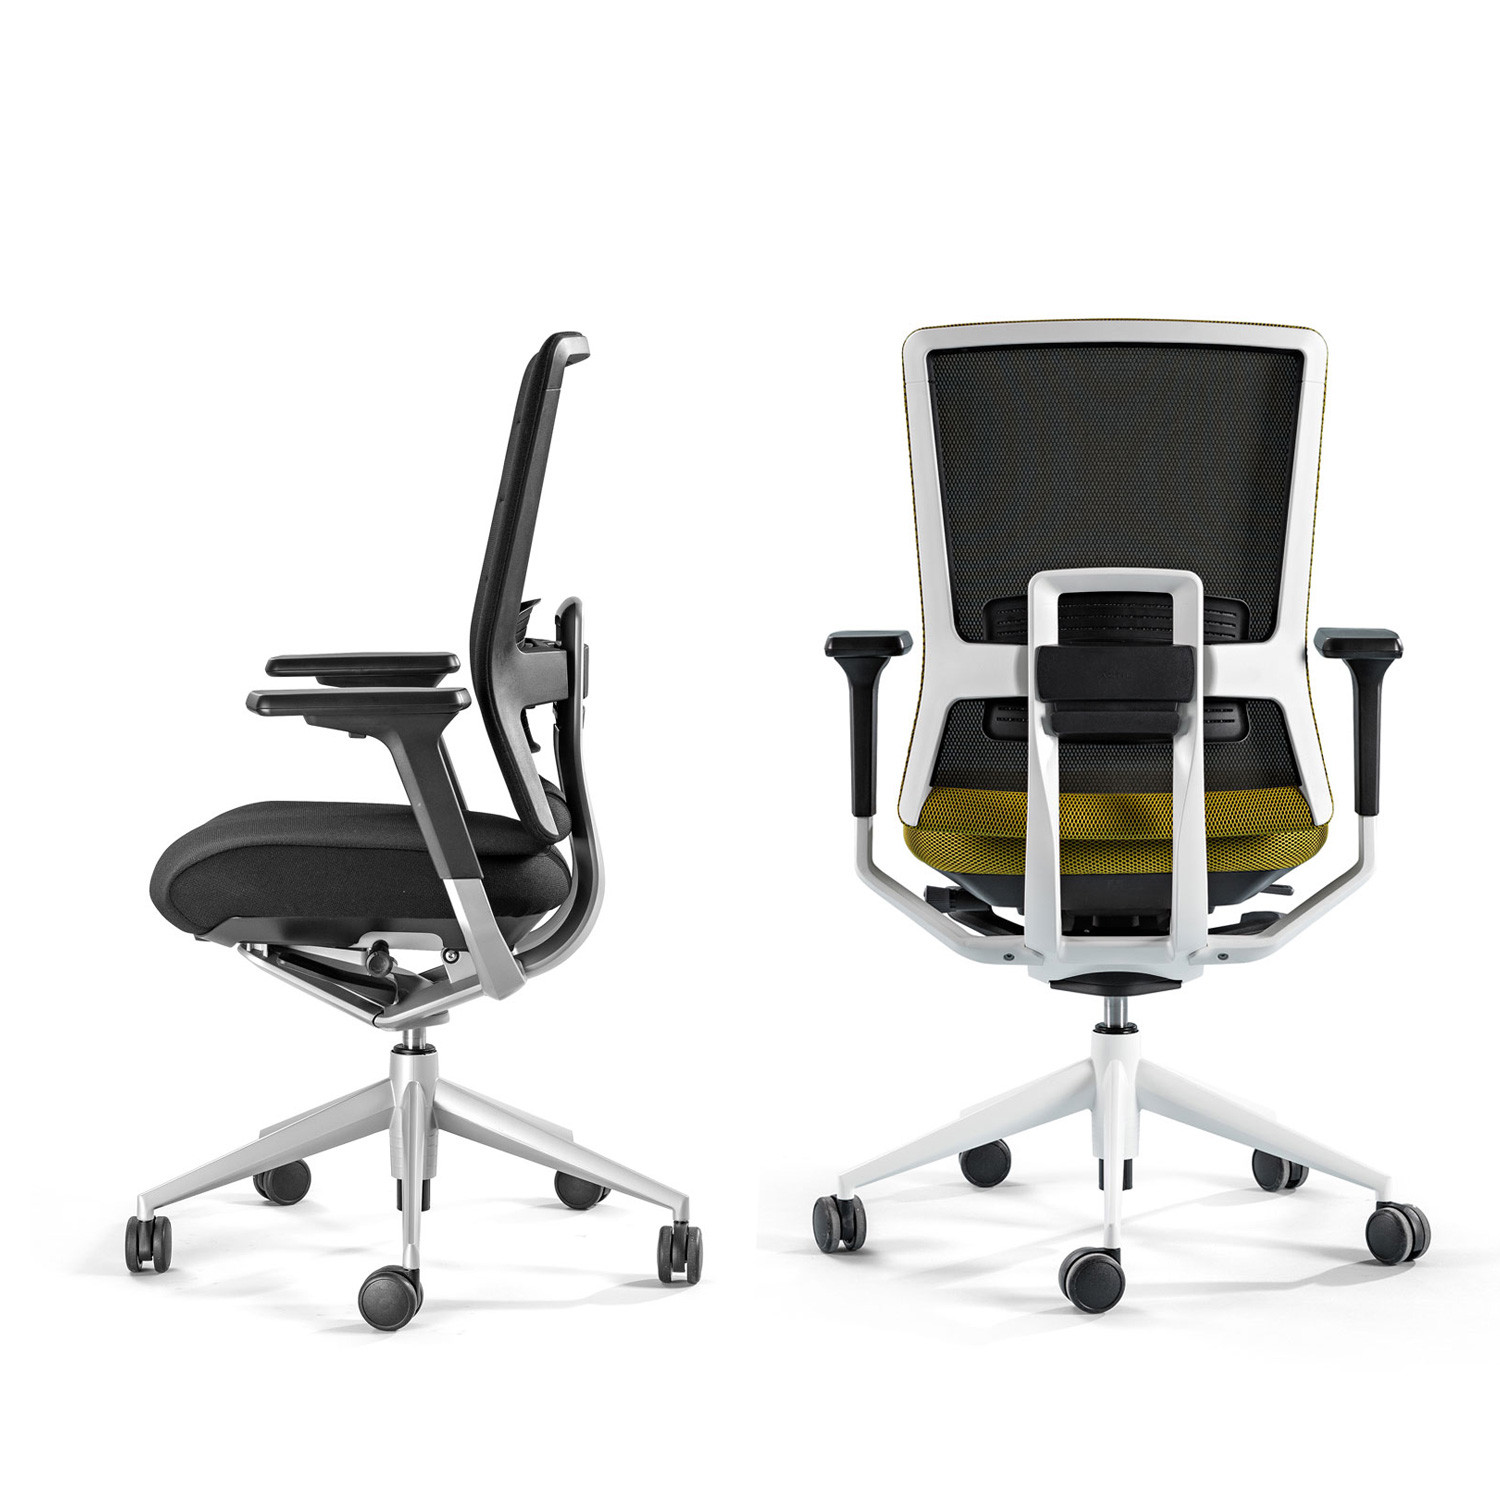 Flex Chairs Tnk Flex Office Chair Actiu Tnk Task Chairs Apres Furniture